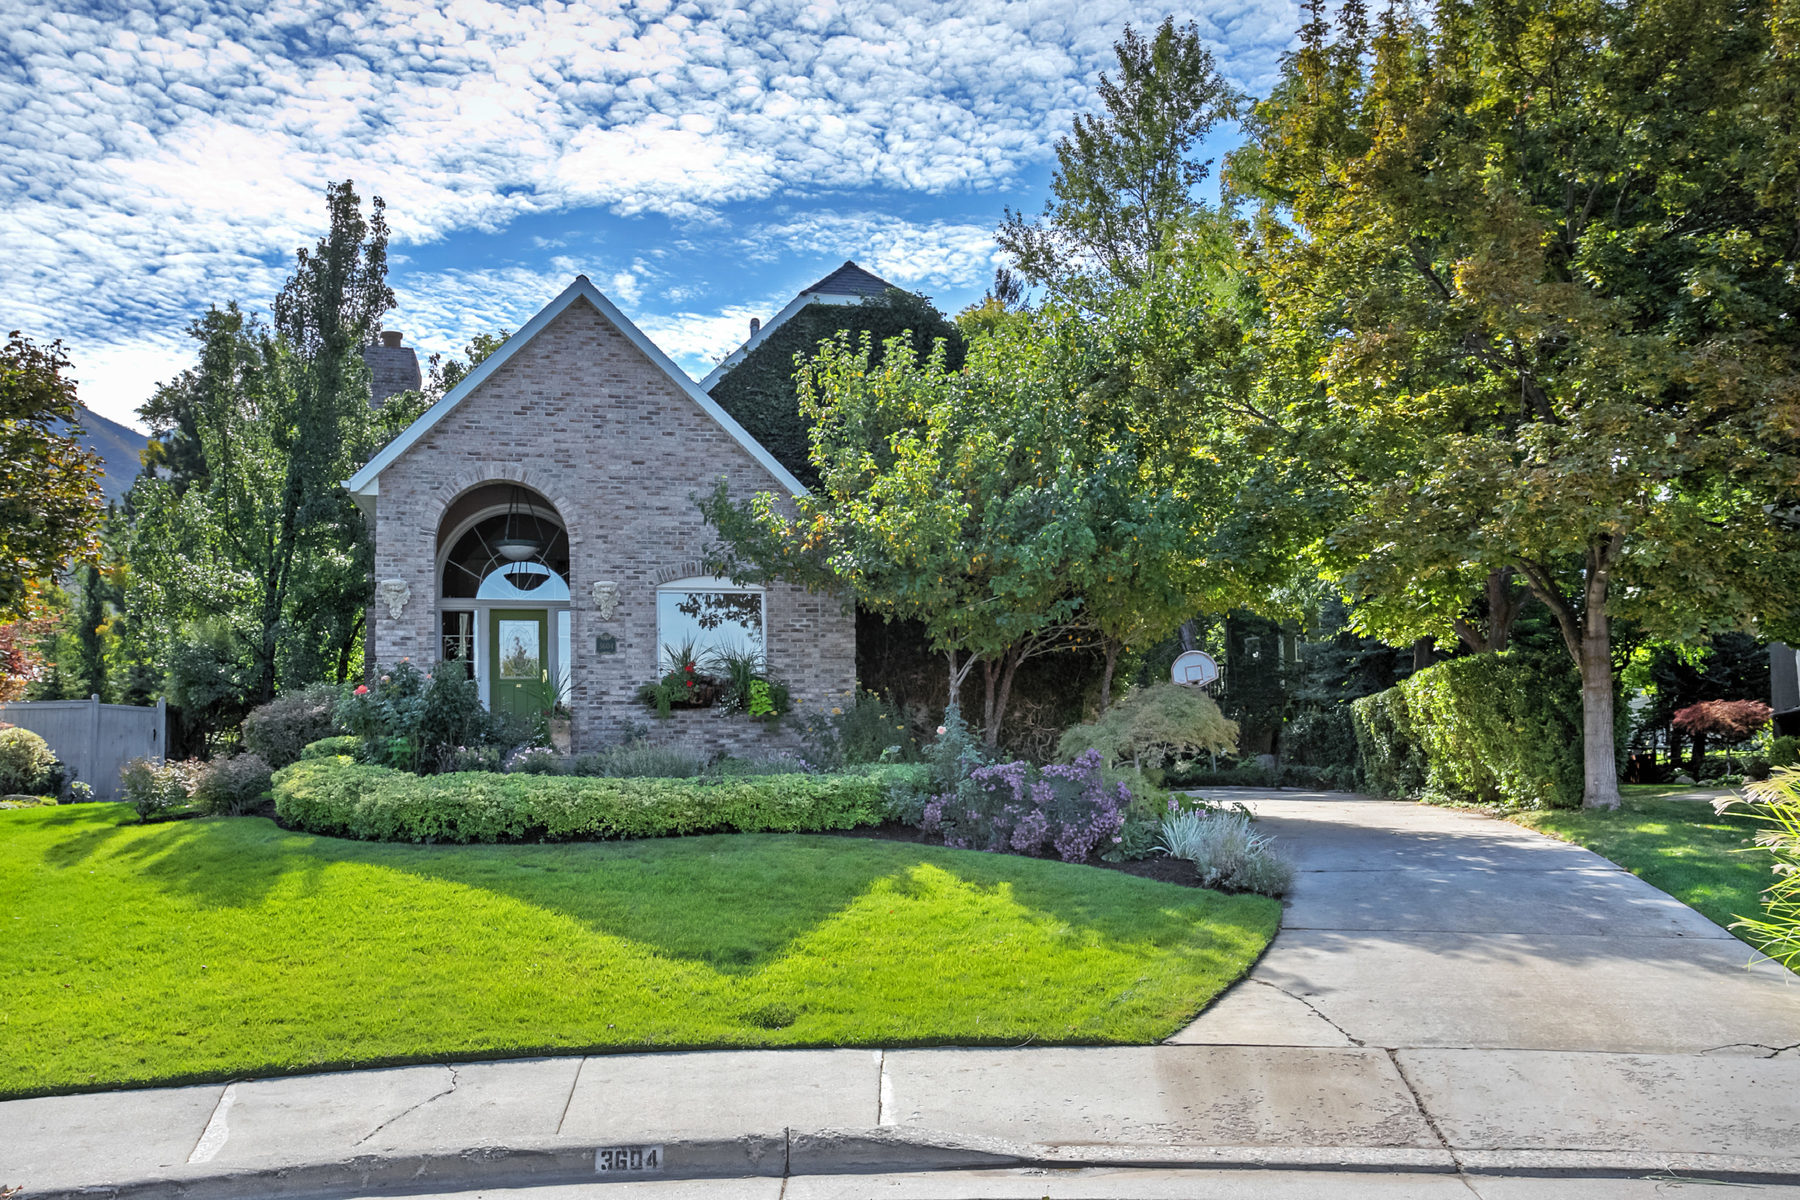 Single Family Home for Sale at Charming custom home on cul de sac at the mouth of Millcreek Canyon. 3604 E Apple Mill Cv Salt Lake City, Utah, 84109 United States